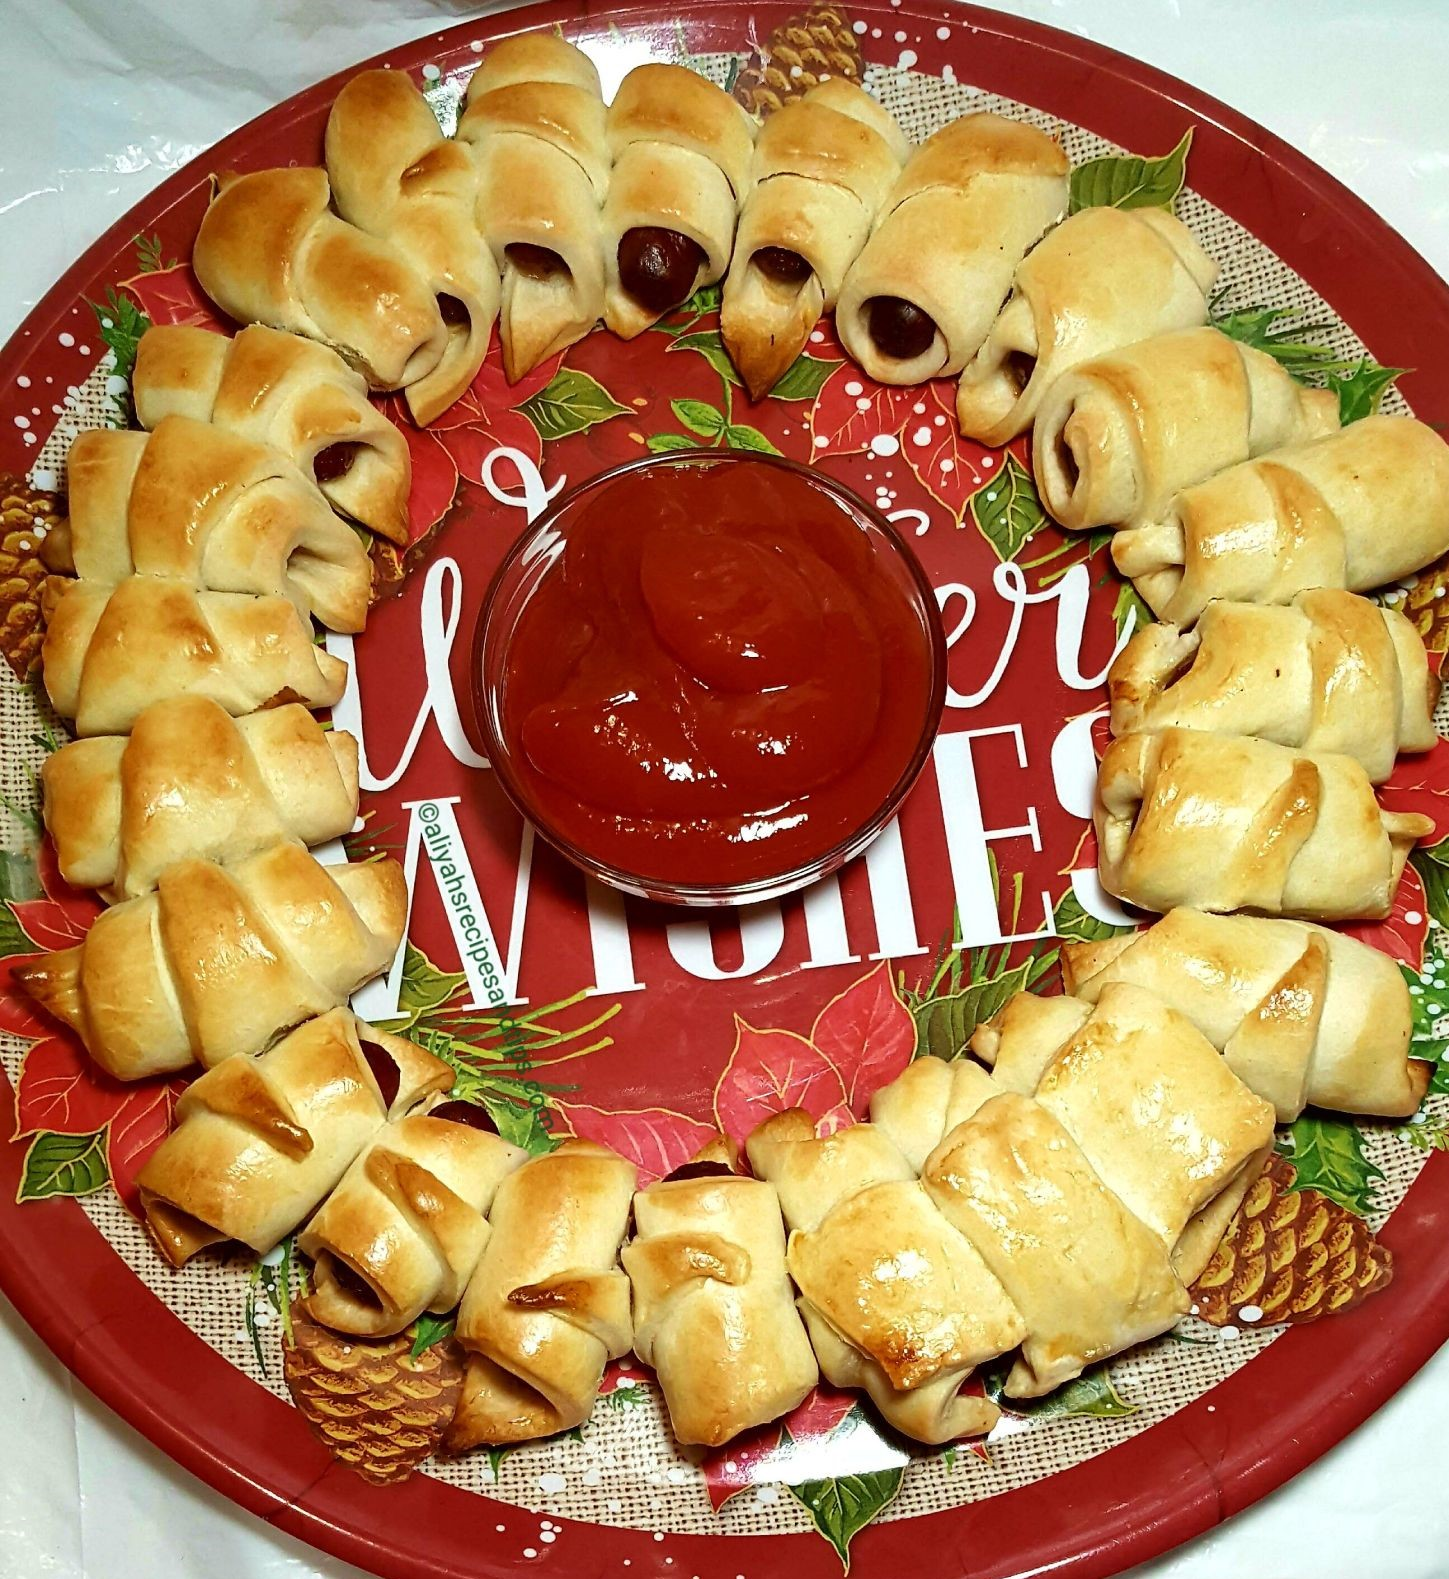 sausage wreath, puff pastry, crescent rolls, Christmas baking,decorative, magnolia leave,knotted, holiday sausage wreath, smoked sausage wreath, sausage wreath recipe, ugly sausage wreath, hillshire farm, vegan festive breakfast, pizza wreath recipe, festive sausage roll wreath, pig in a blanket, Christmas, recipe, food, holiday, mini sausage, festive, hot dog, hand drawn, lit' smokies sausage